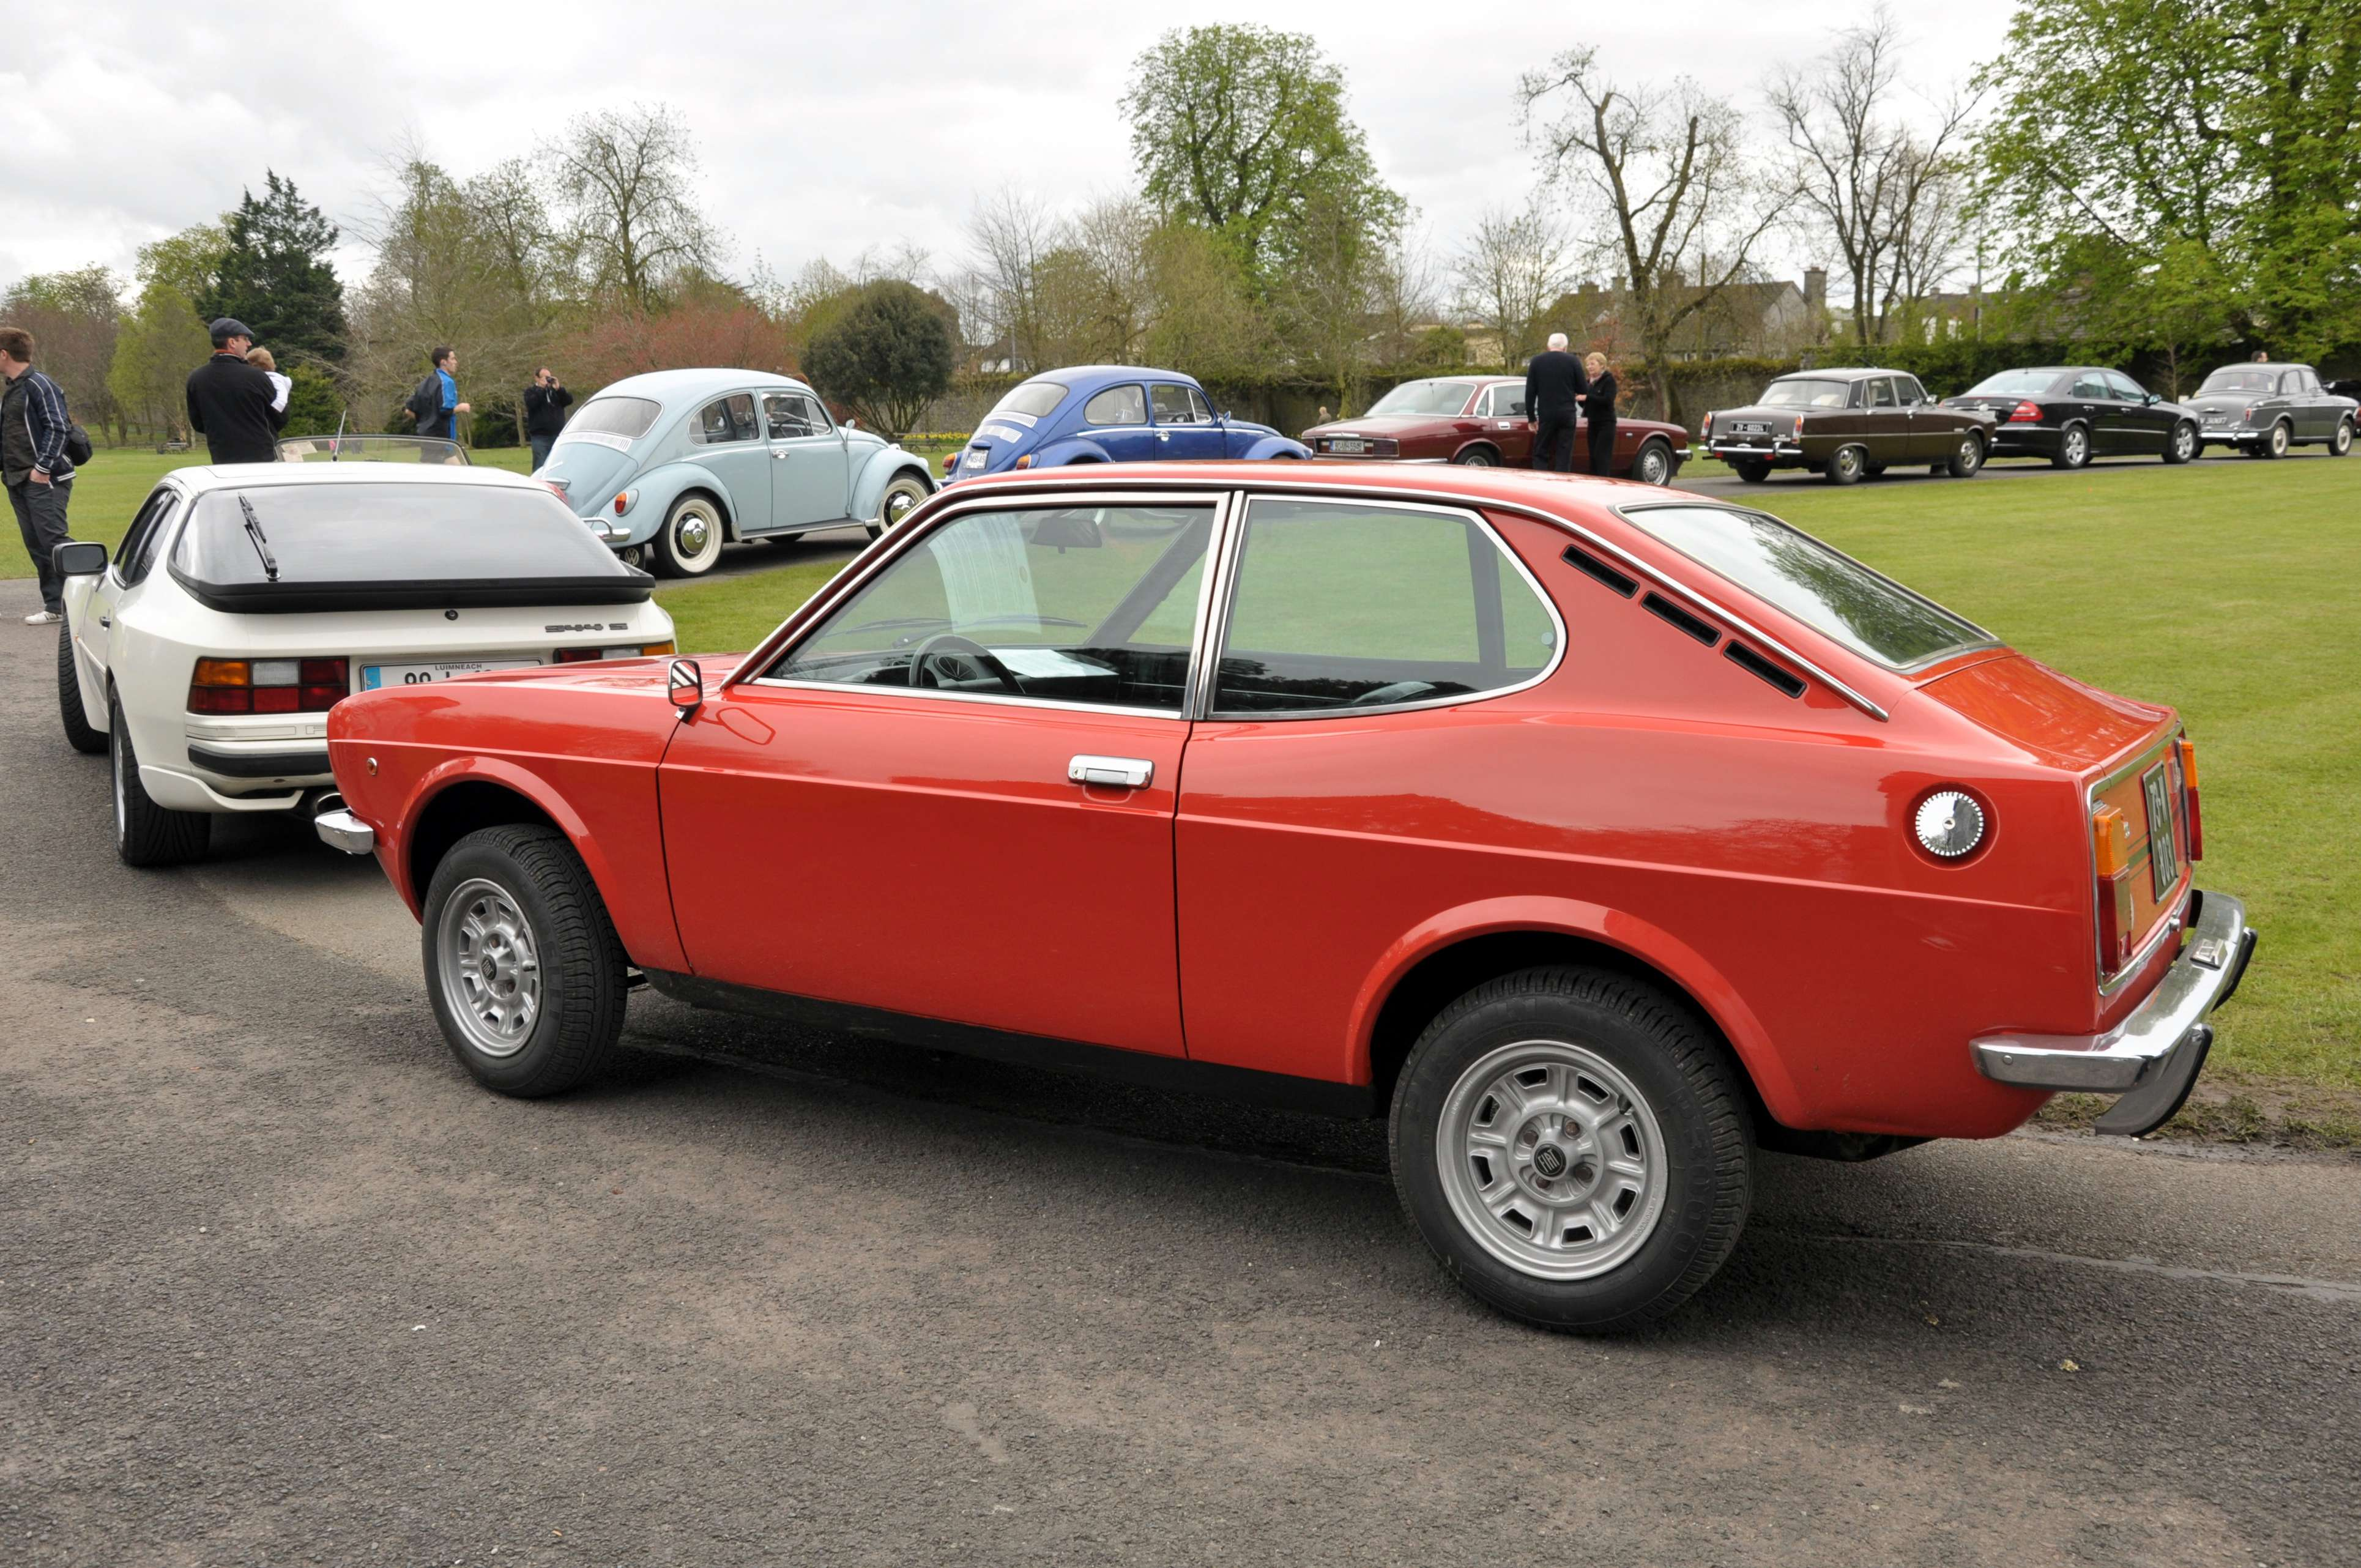 Fiat 128 coupe #8806790